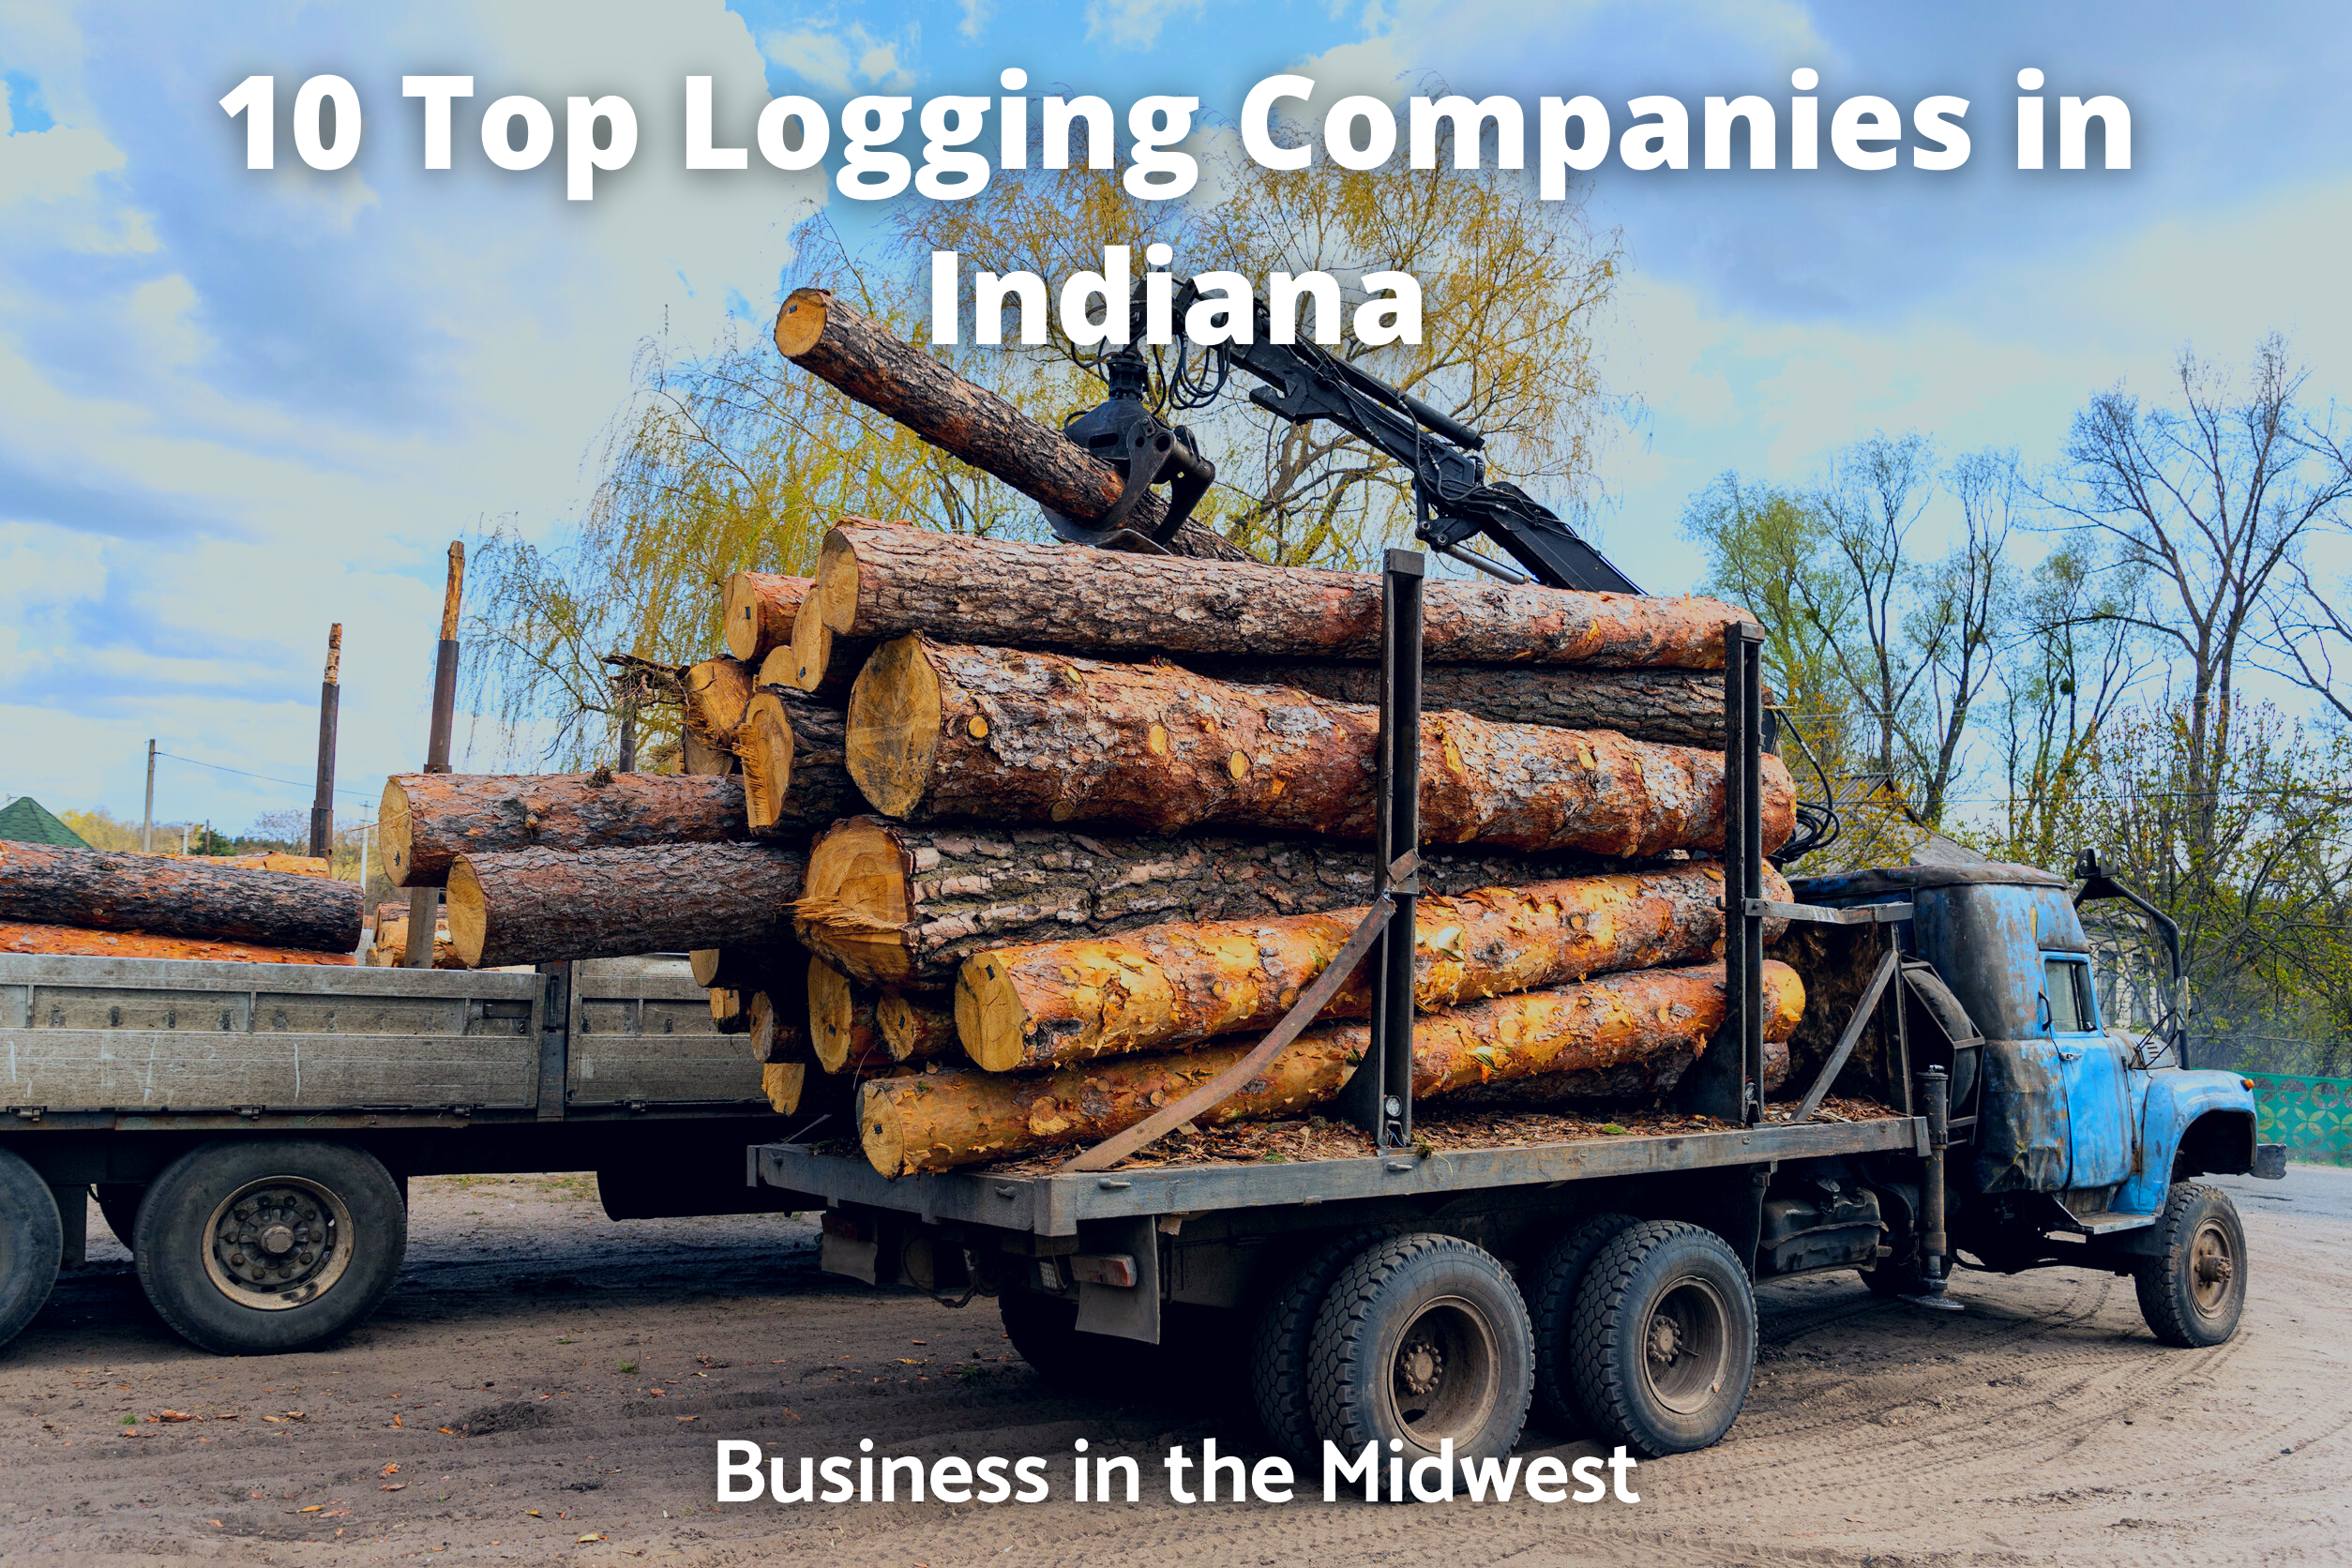 logging companies in Indiana